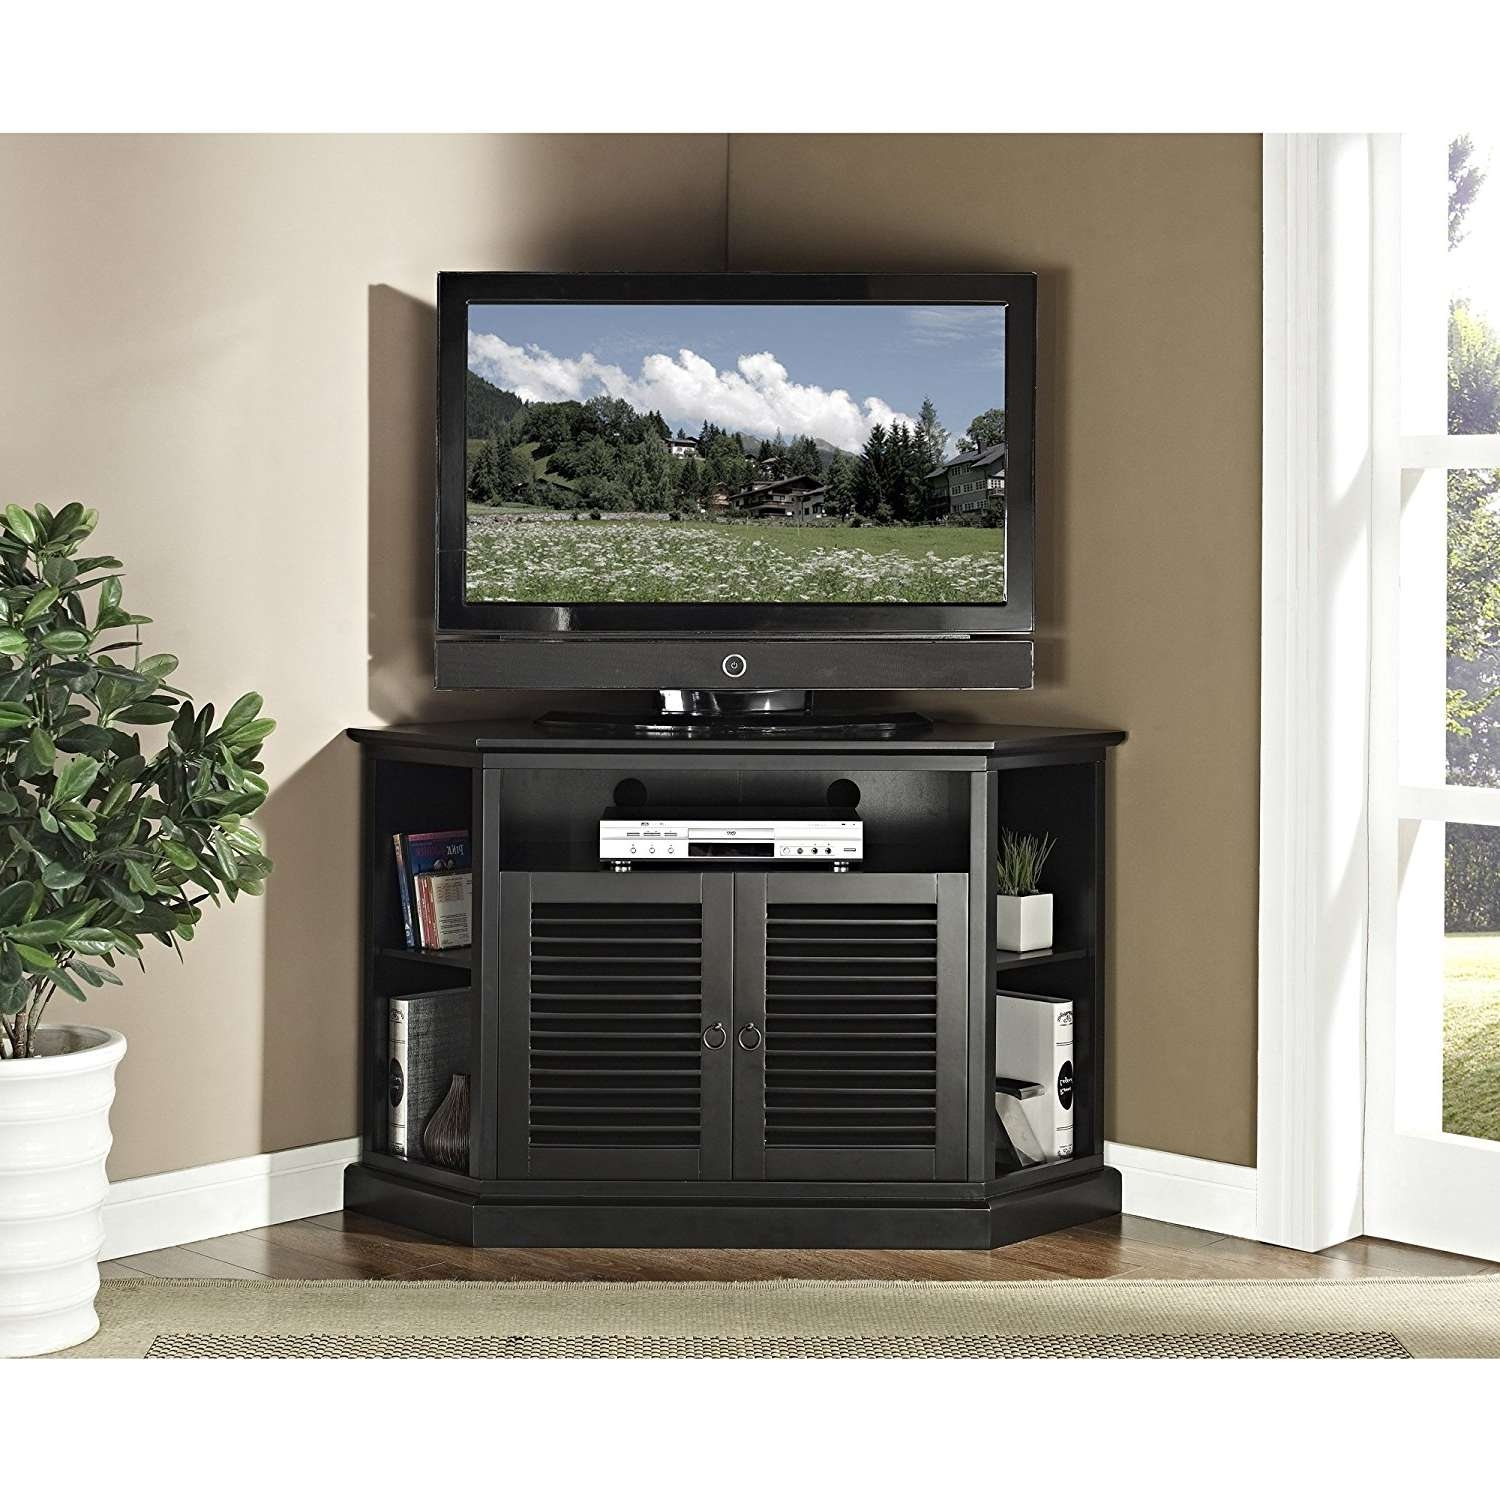 Tv Stand : 31 Outstanding 55 In Corner Tv Stand Picture Ideas Regarding Corner Tv Cabinets For Flat Screen (View 4 of 20)